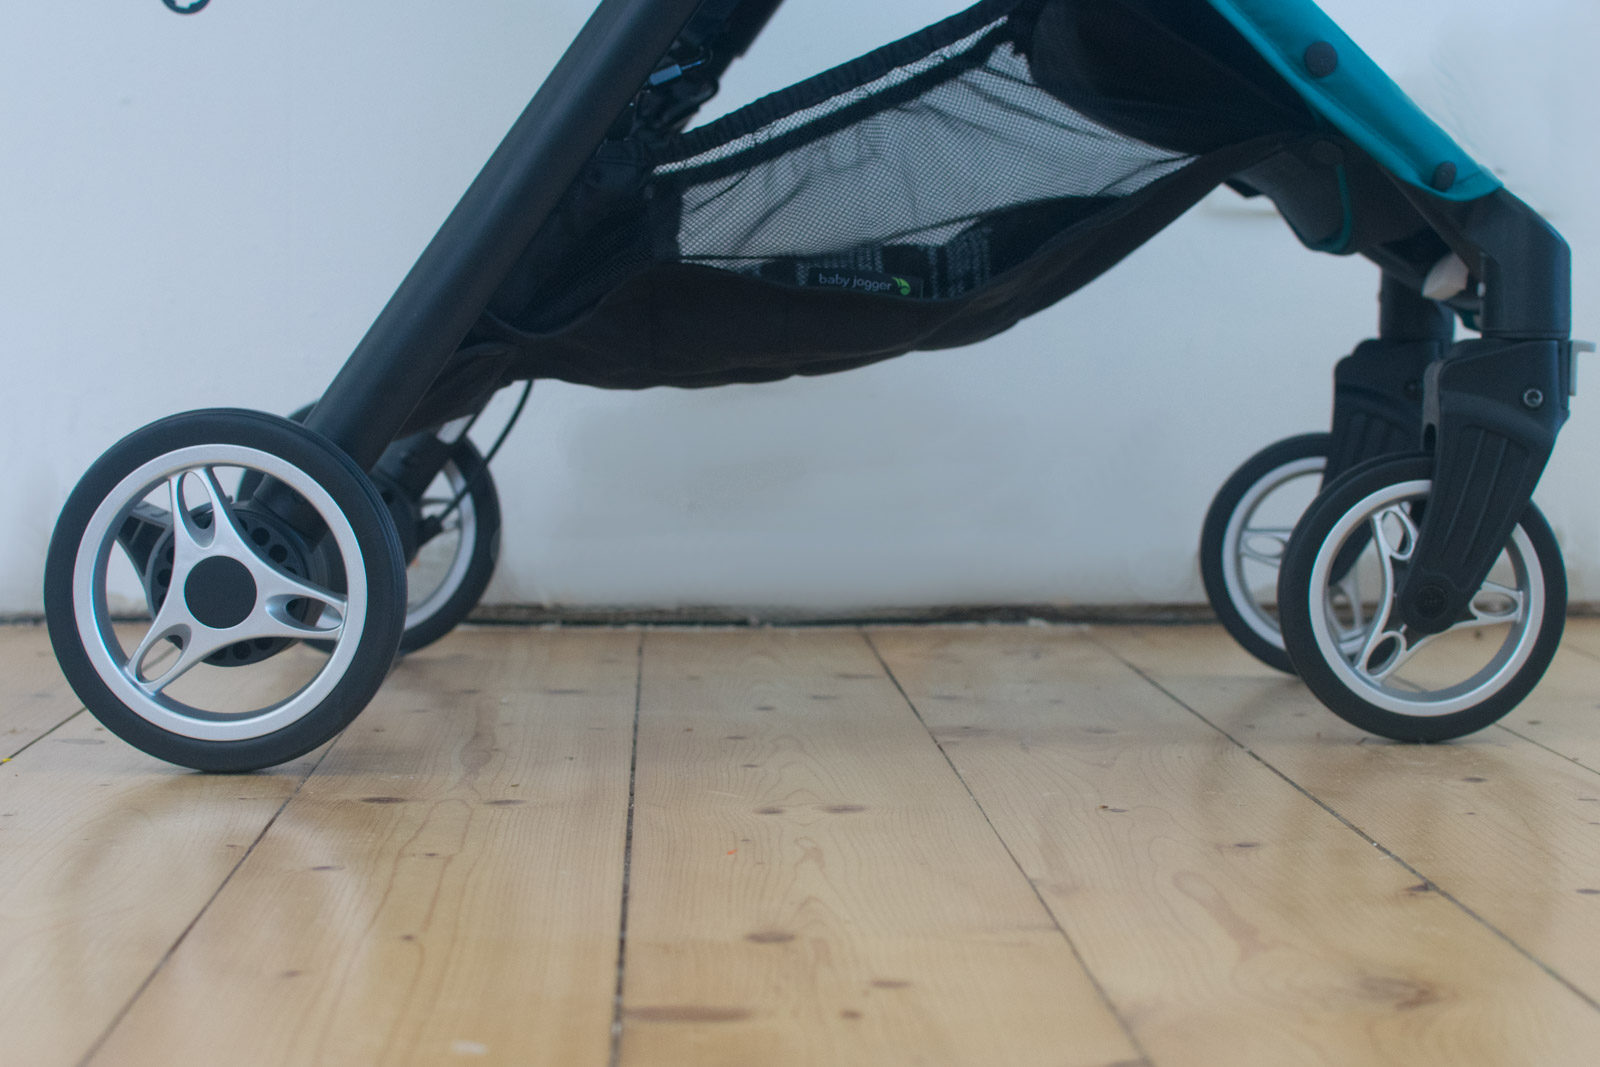 der baby jogger city tour buggy und kinderwagen im test. Black Bedroom Furniture Sets. Home Design Ideas